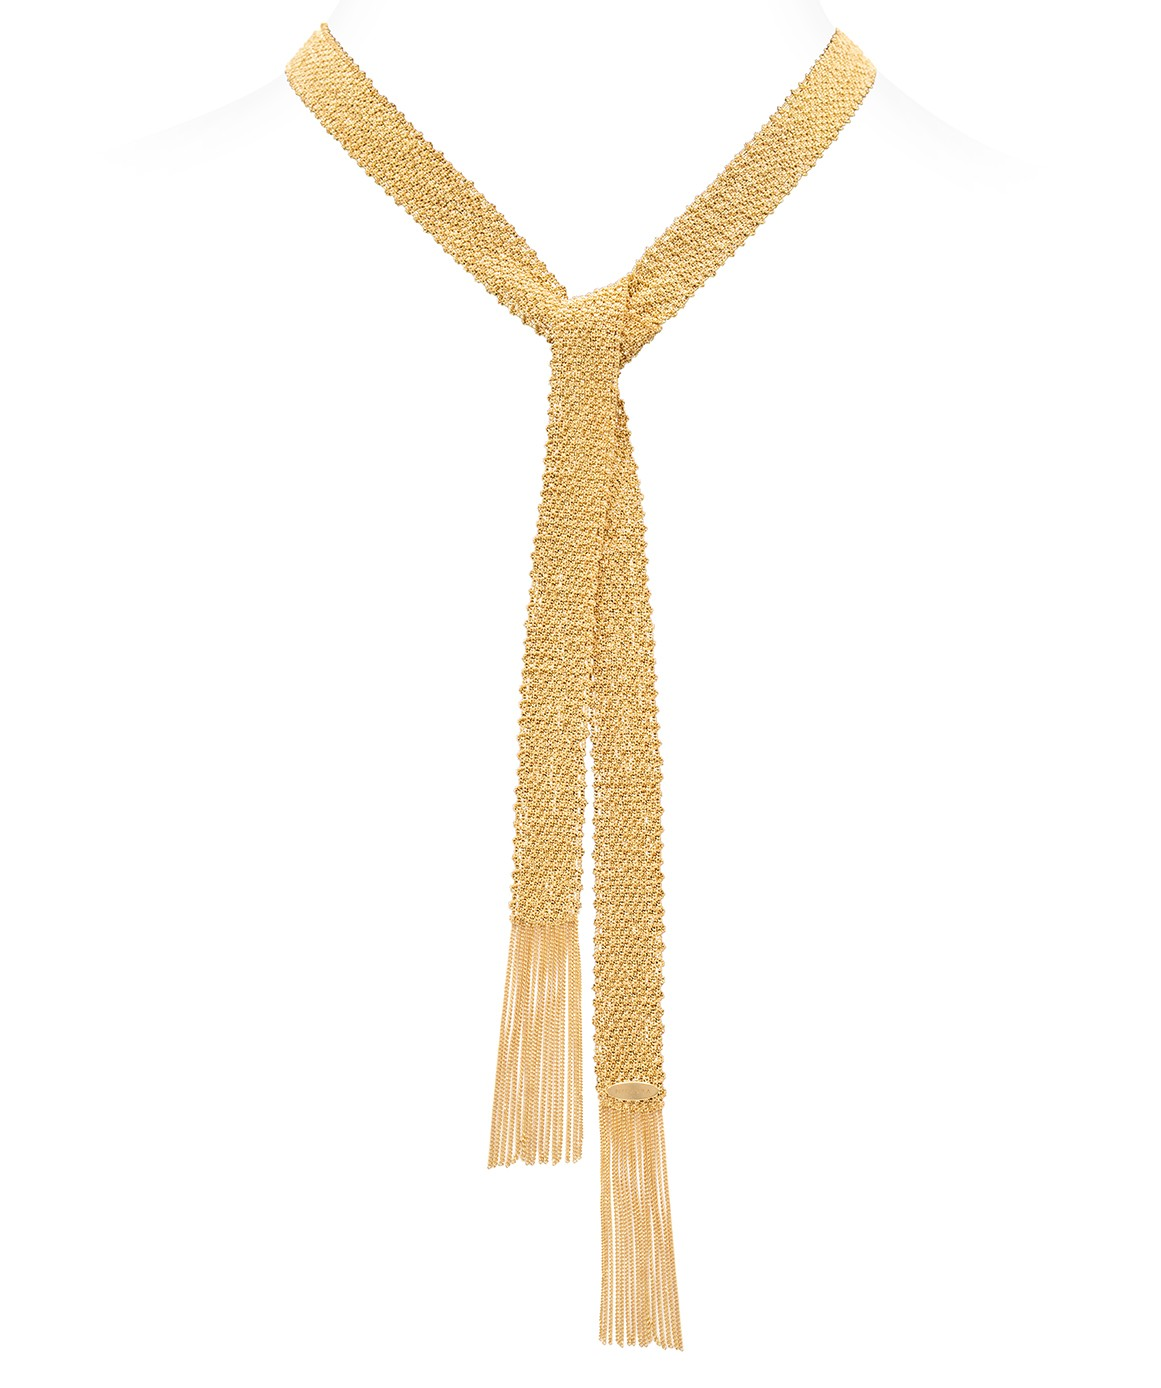 CHAMPAGNE Scarf in Sterling Silver 18Kt. Yellow gold plated